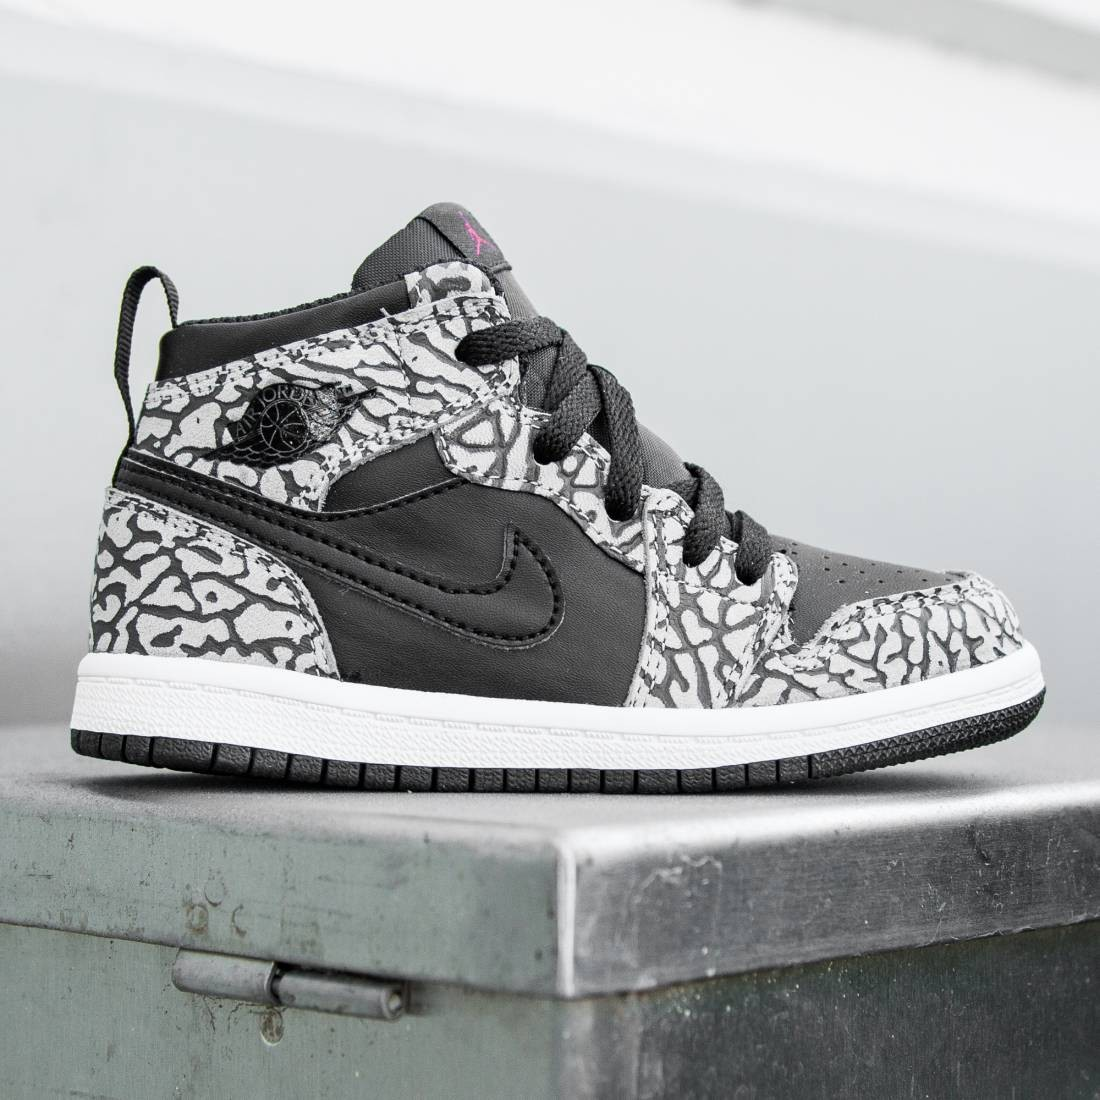 9c49ca1575f Jordan Toddlers Air Jordan 1 Retro High Prem BT (black   cement grey    anthracite   gym red)